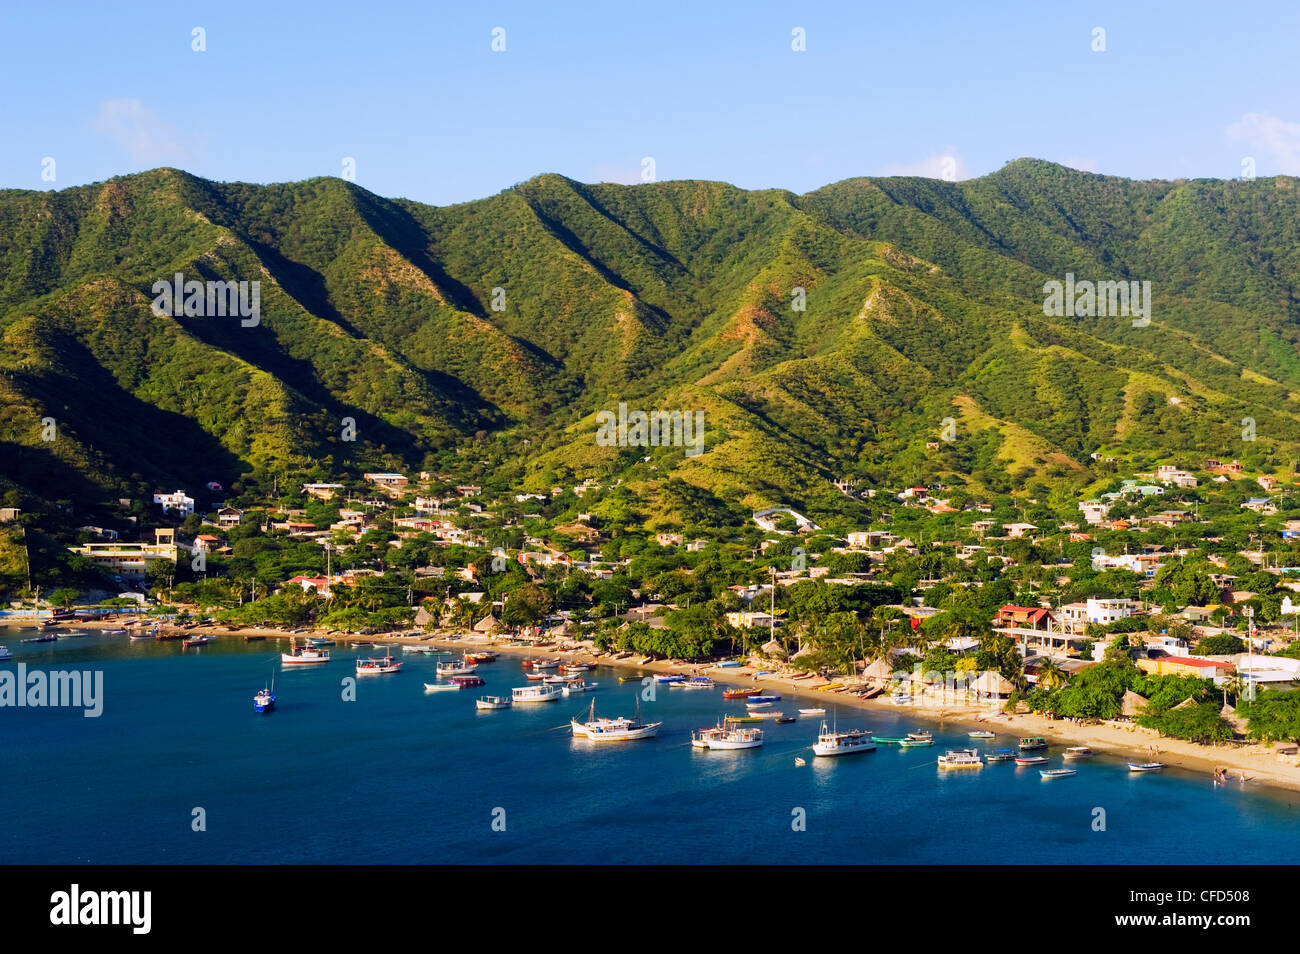 Taganga, Caribbean Coast, Colombia, South America - Stock Image